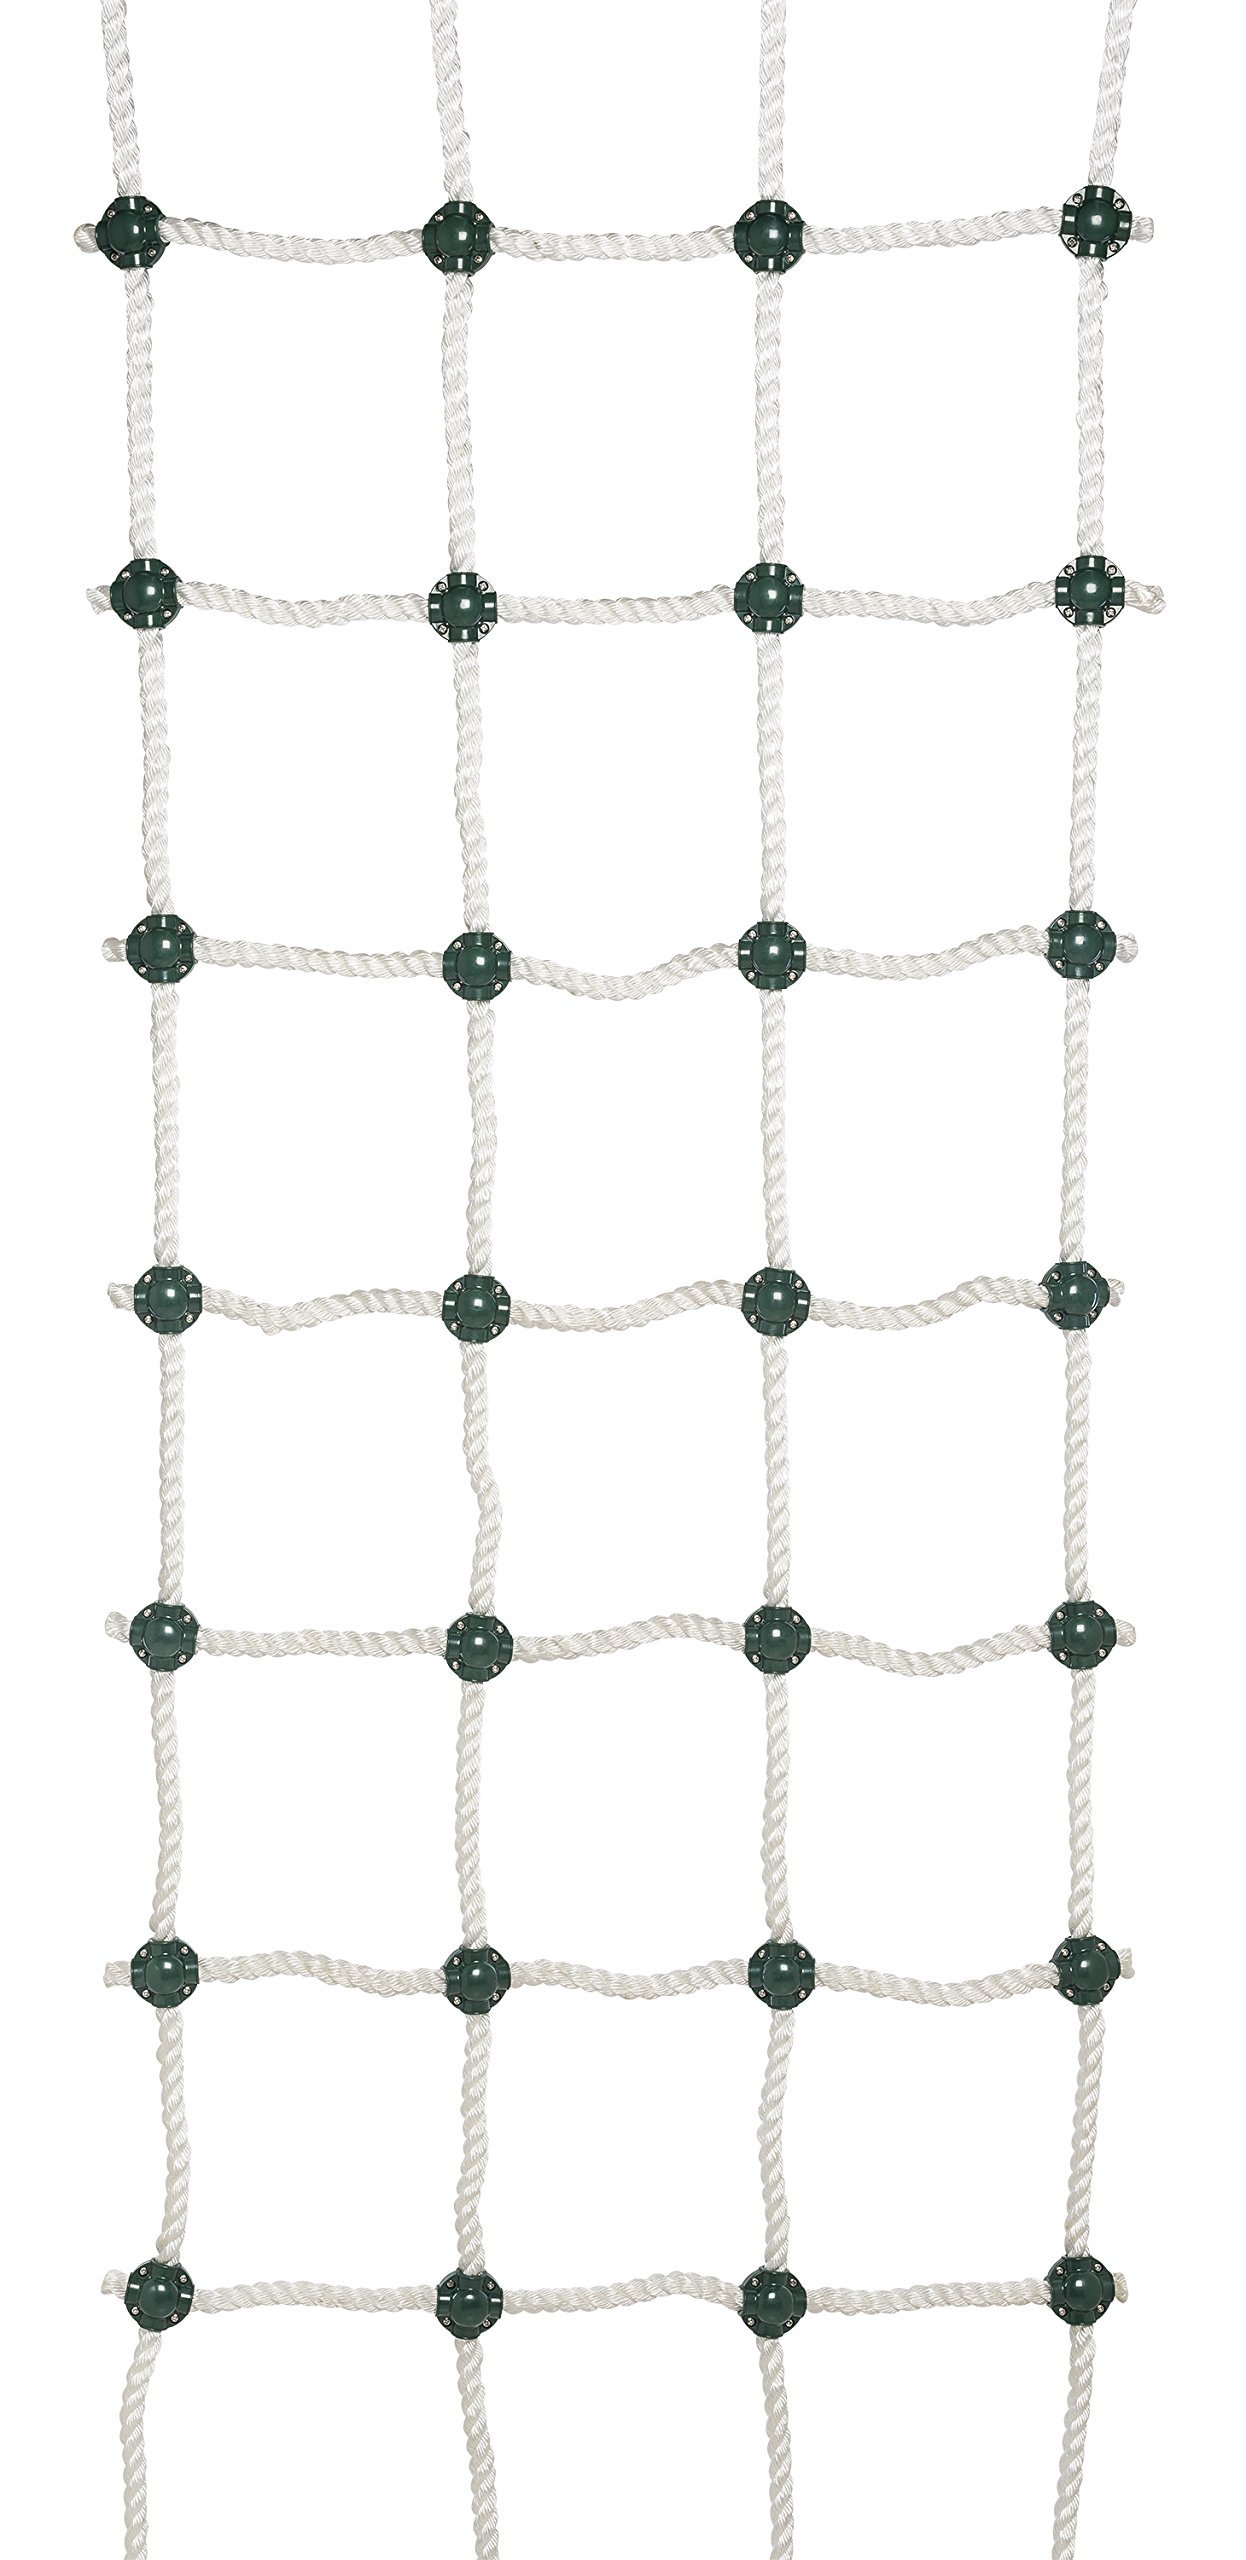 Safe-Kidz™ Cargo Climbing Net, 100% Polyester Rope Ladder, 96'' L x 30'' W + Drill Bit & Instructions by Safe-Kidz™